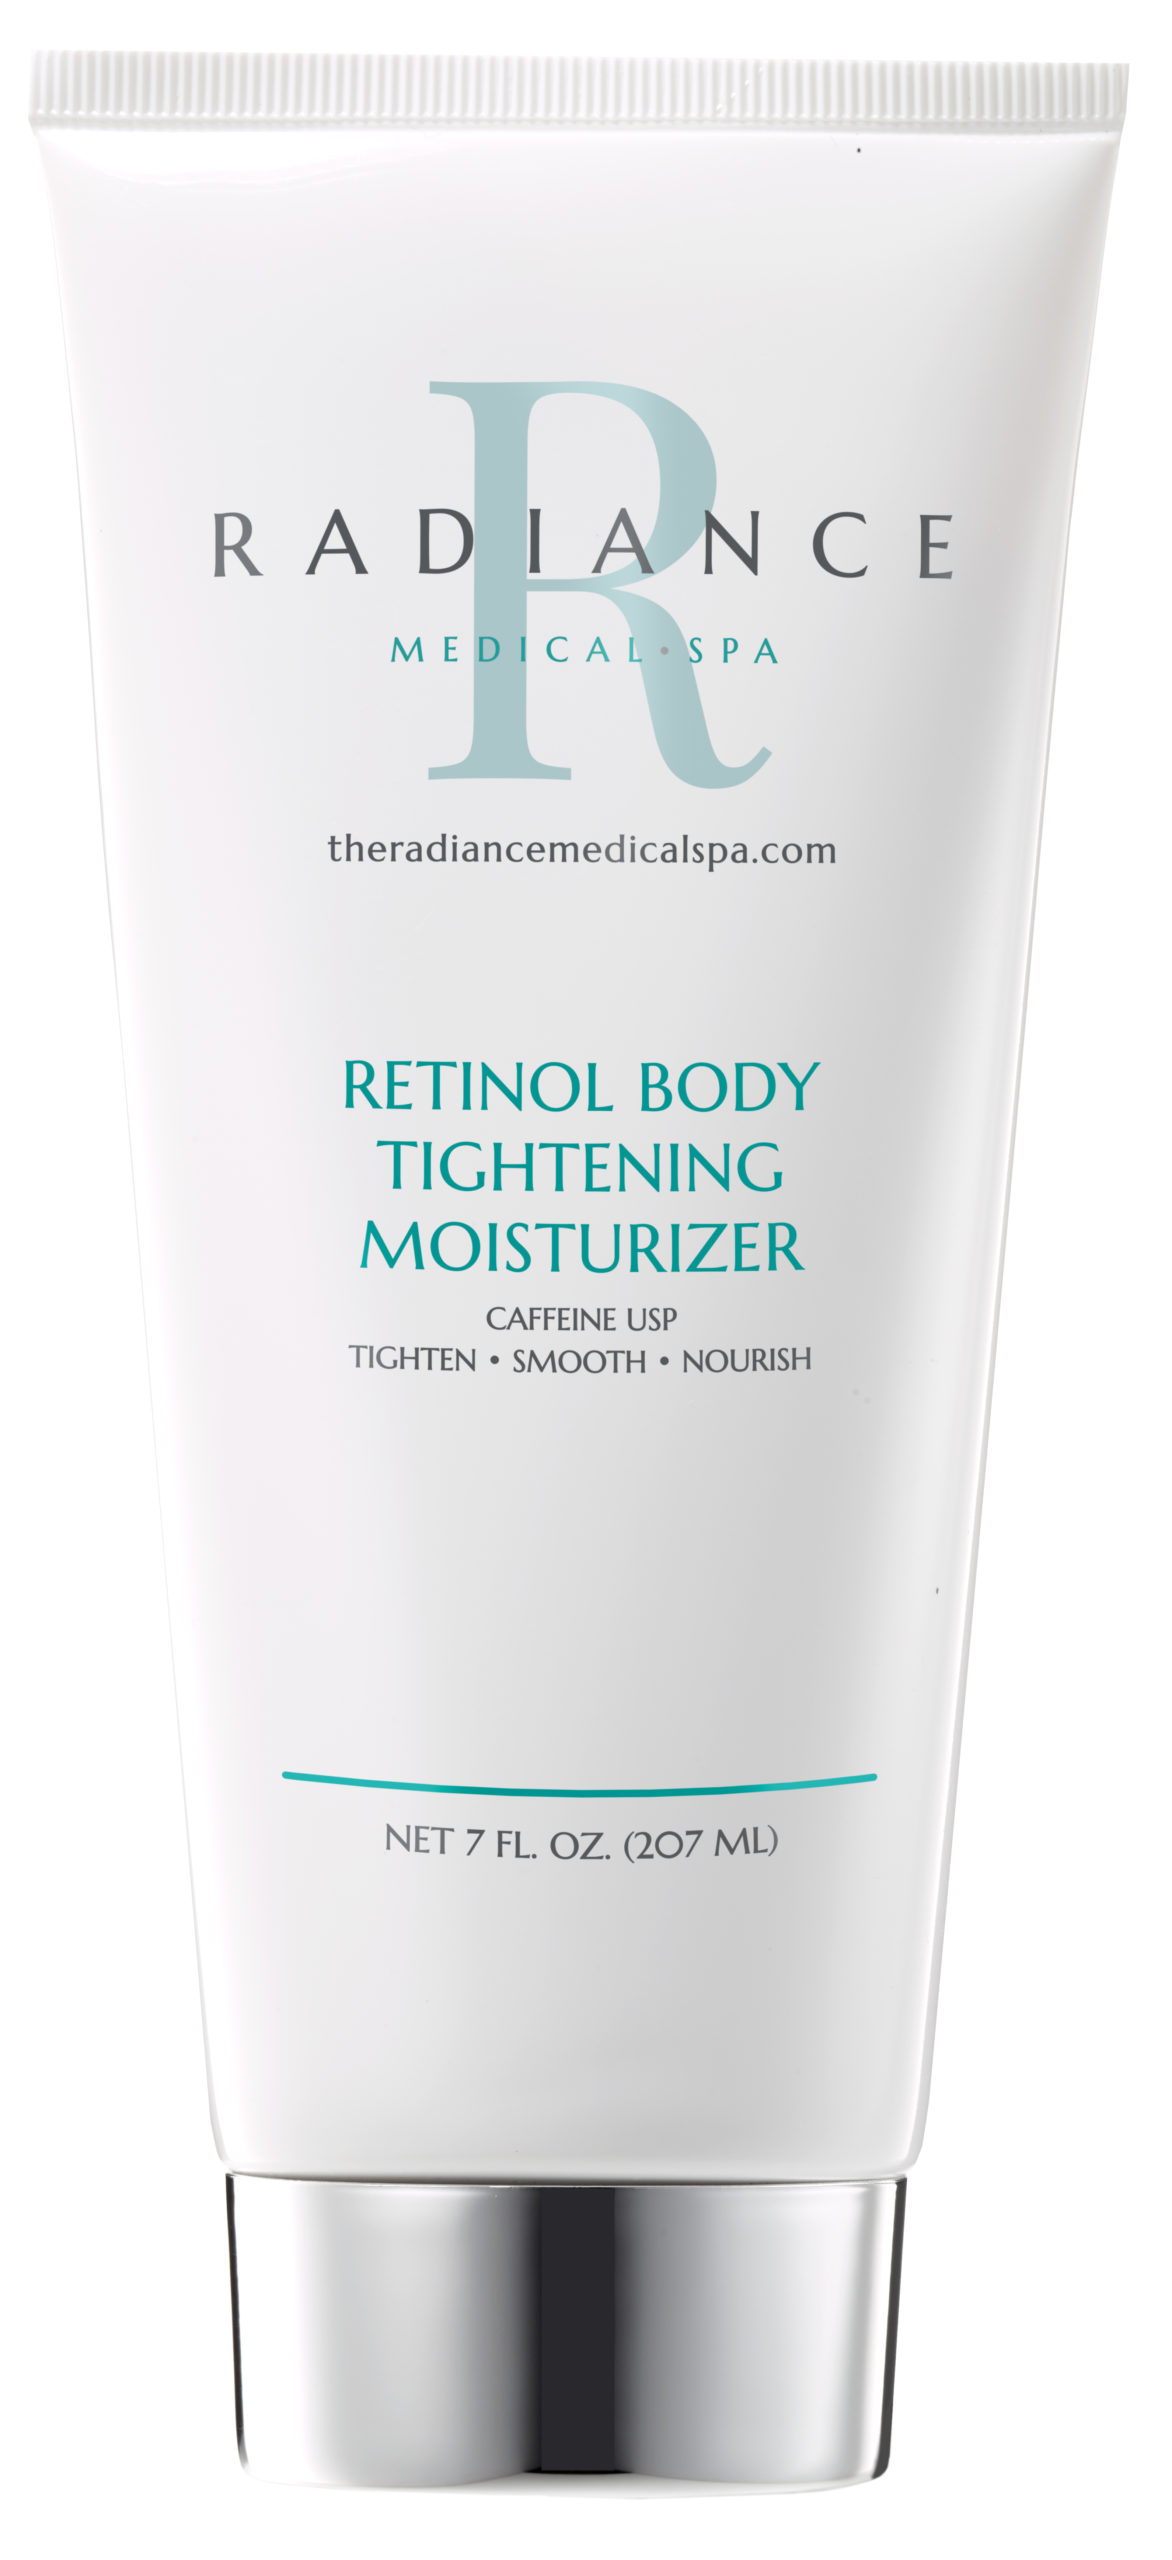 Retinol Body Tightening Moisturizer